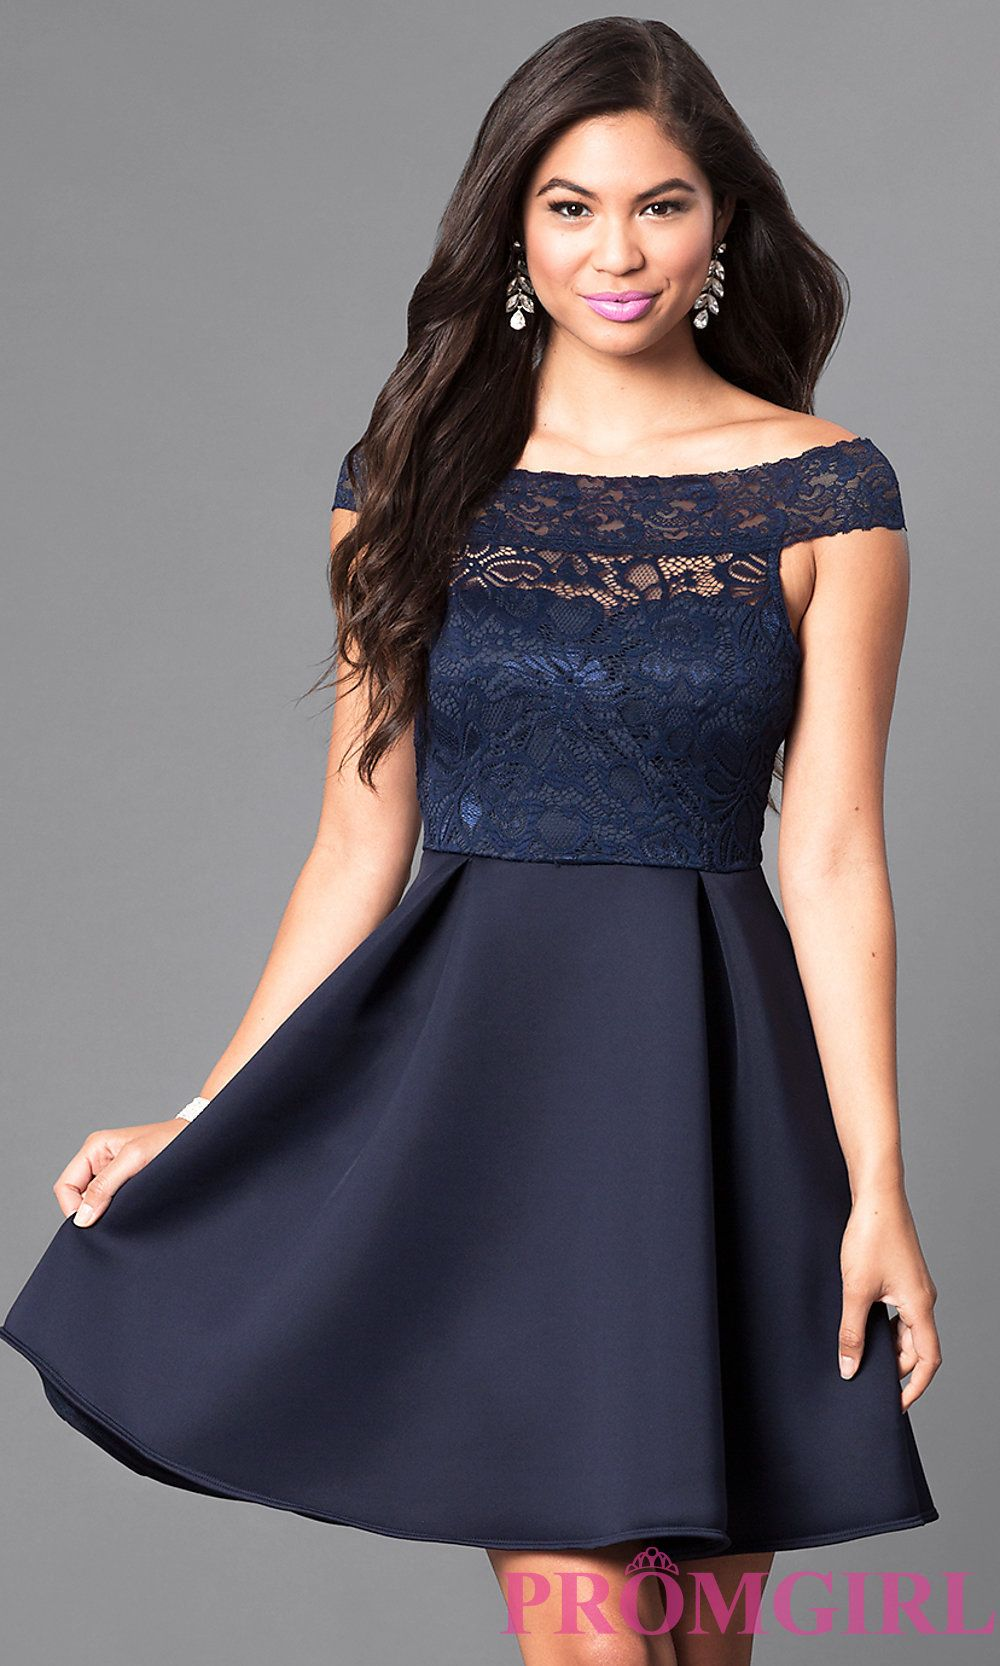 Navy Off The Shoulder Lace Bodice Homecoming Dress Homecoming Dresses Spring Formal Dresses Semi Formal Dresses For Teens [ 1666 x 1000 Pixel ]